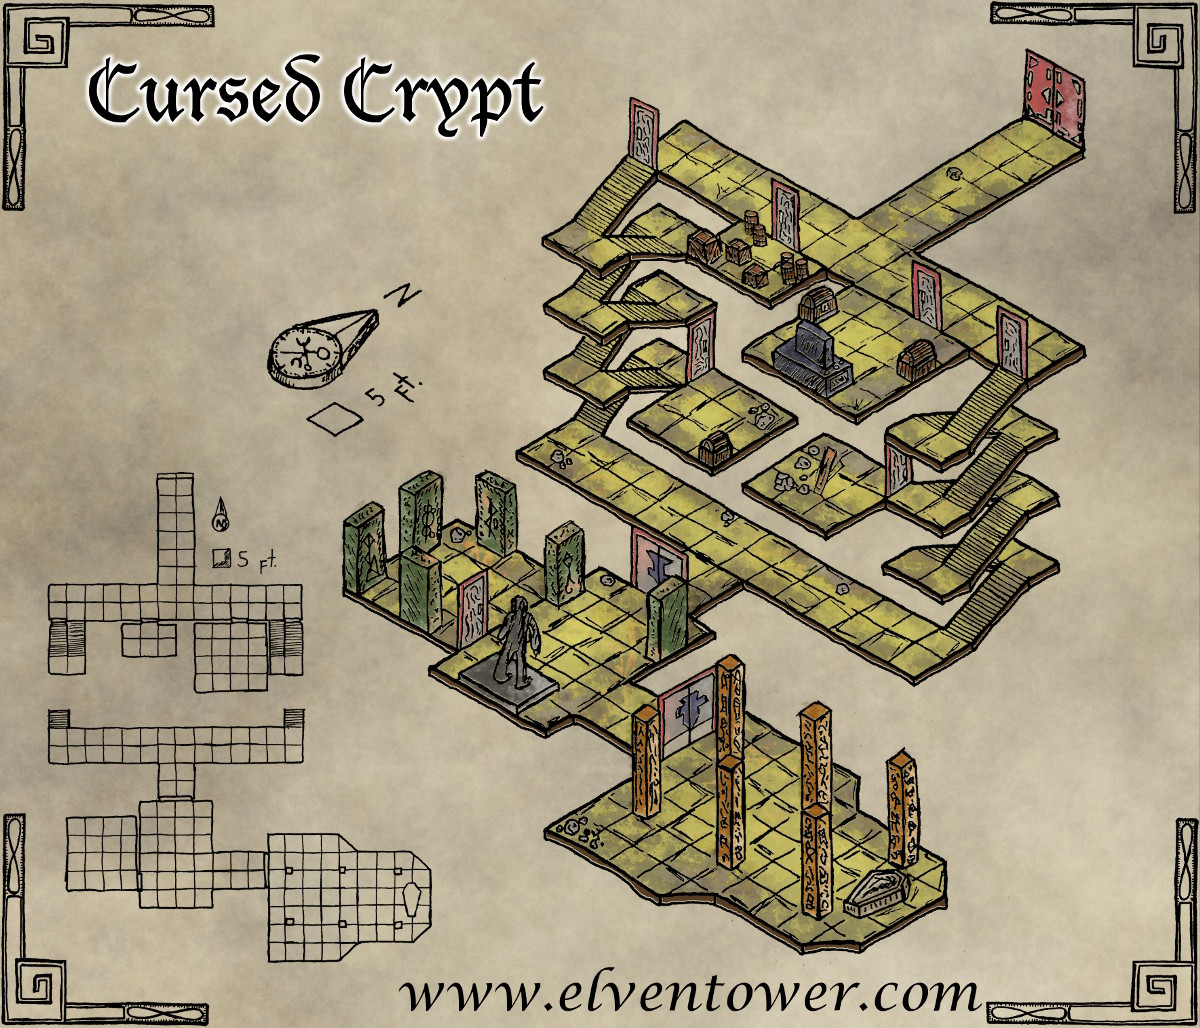 Cool Guy Bedrooms Map 46 Cursed Crypt Elven Tower Elven Tower